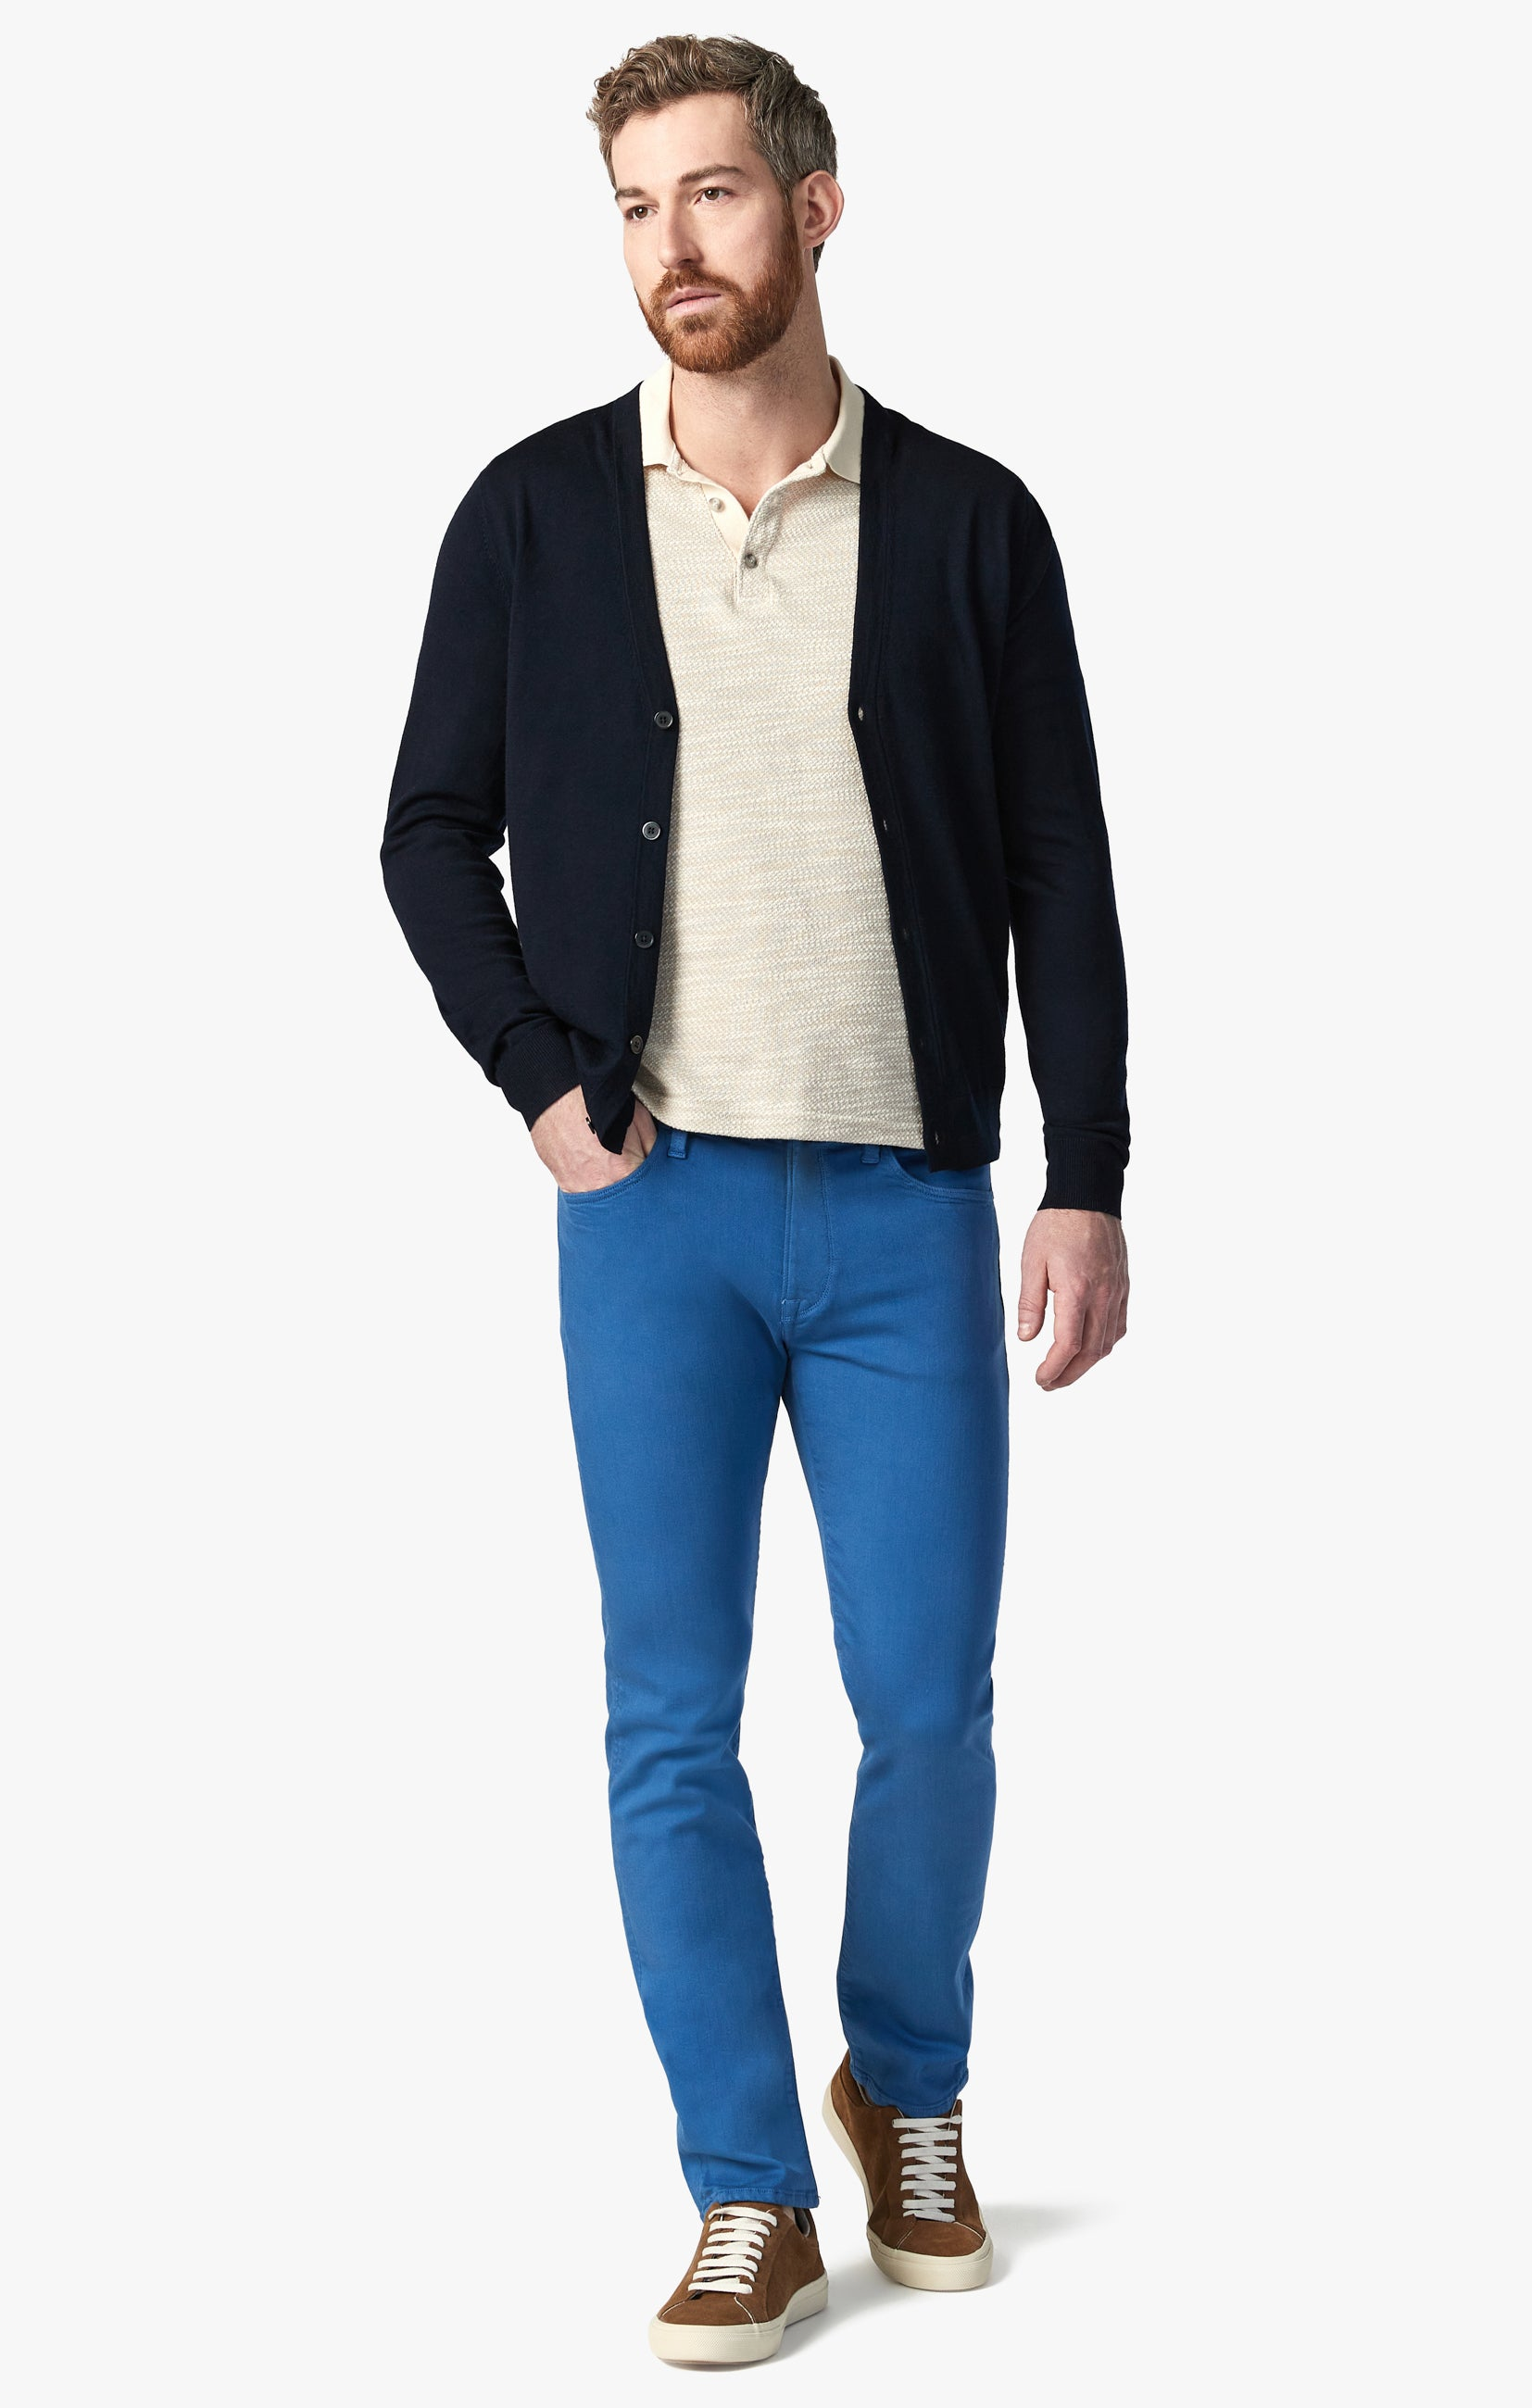 Courage Straight Leg Pants In Royal Comfort Image 1